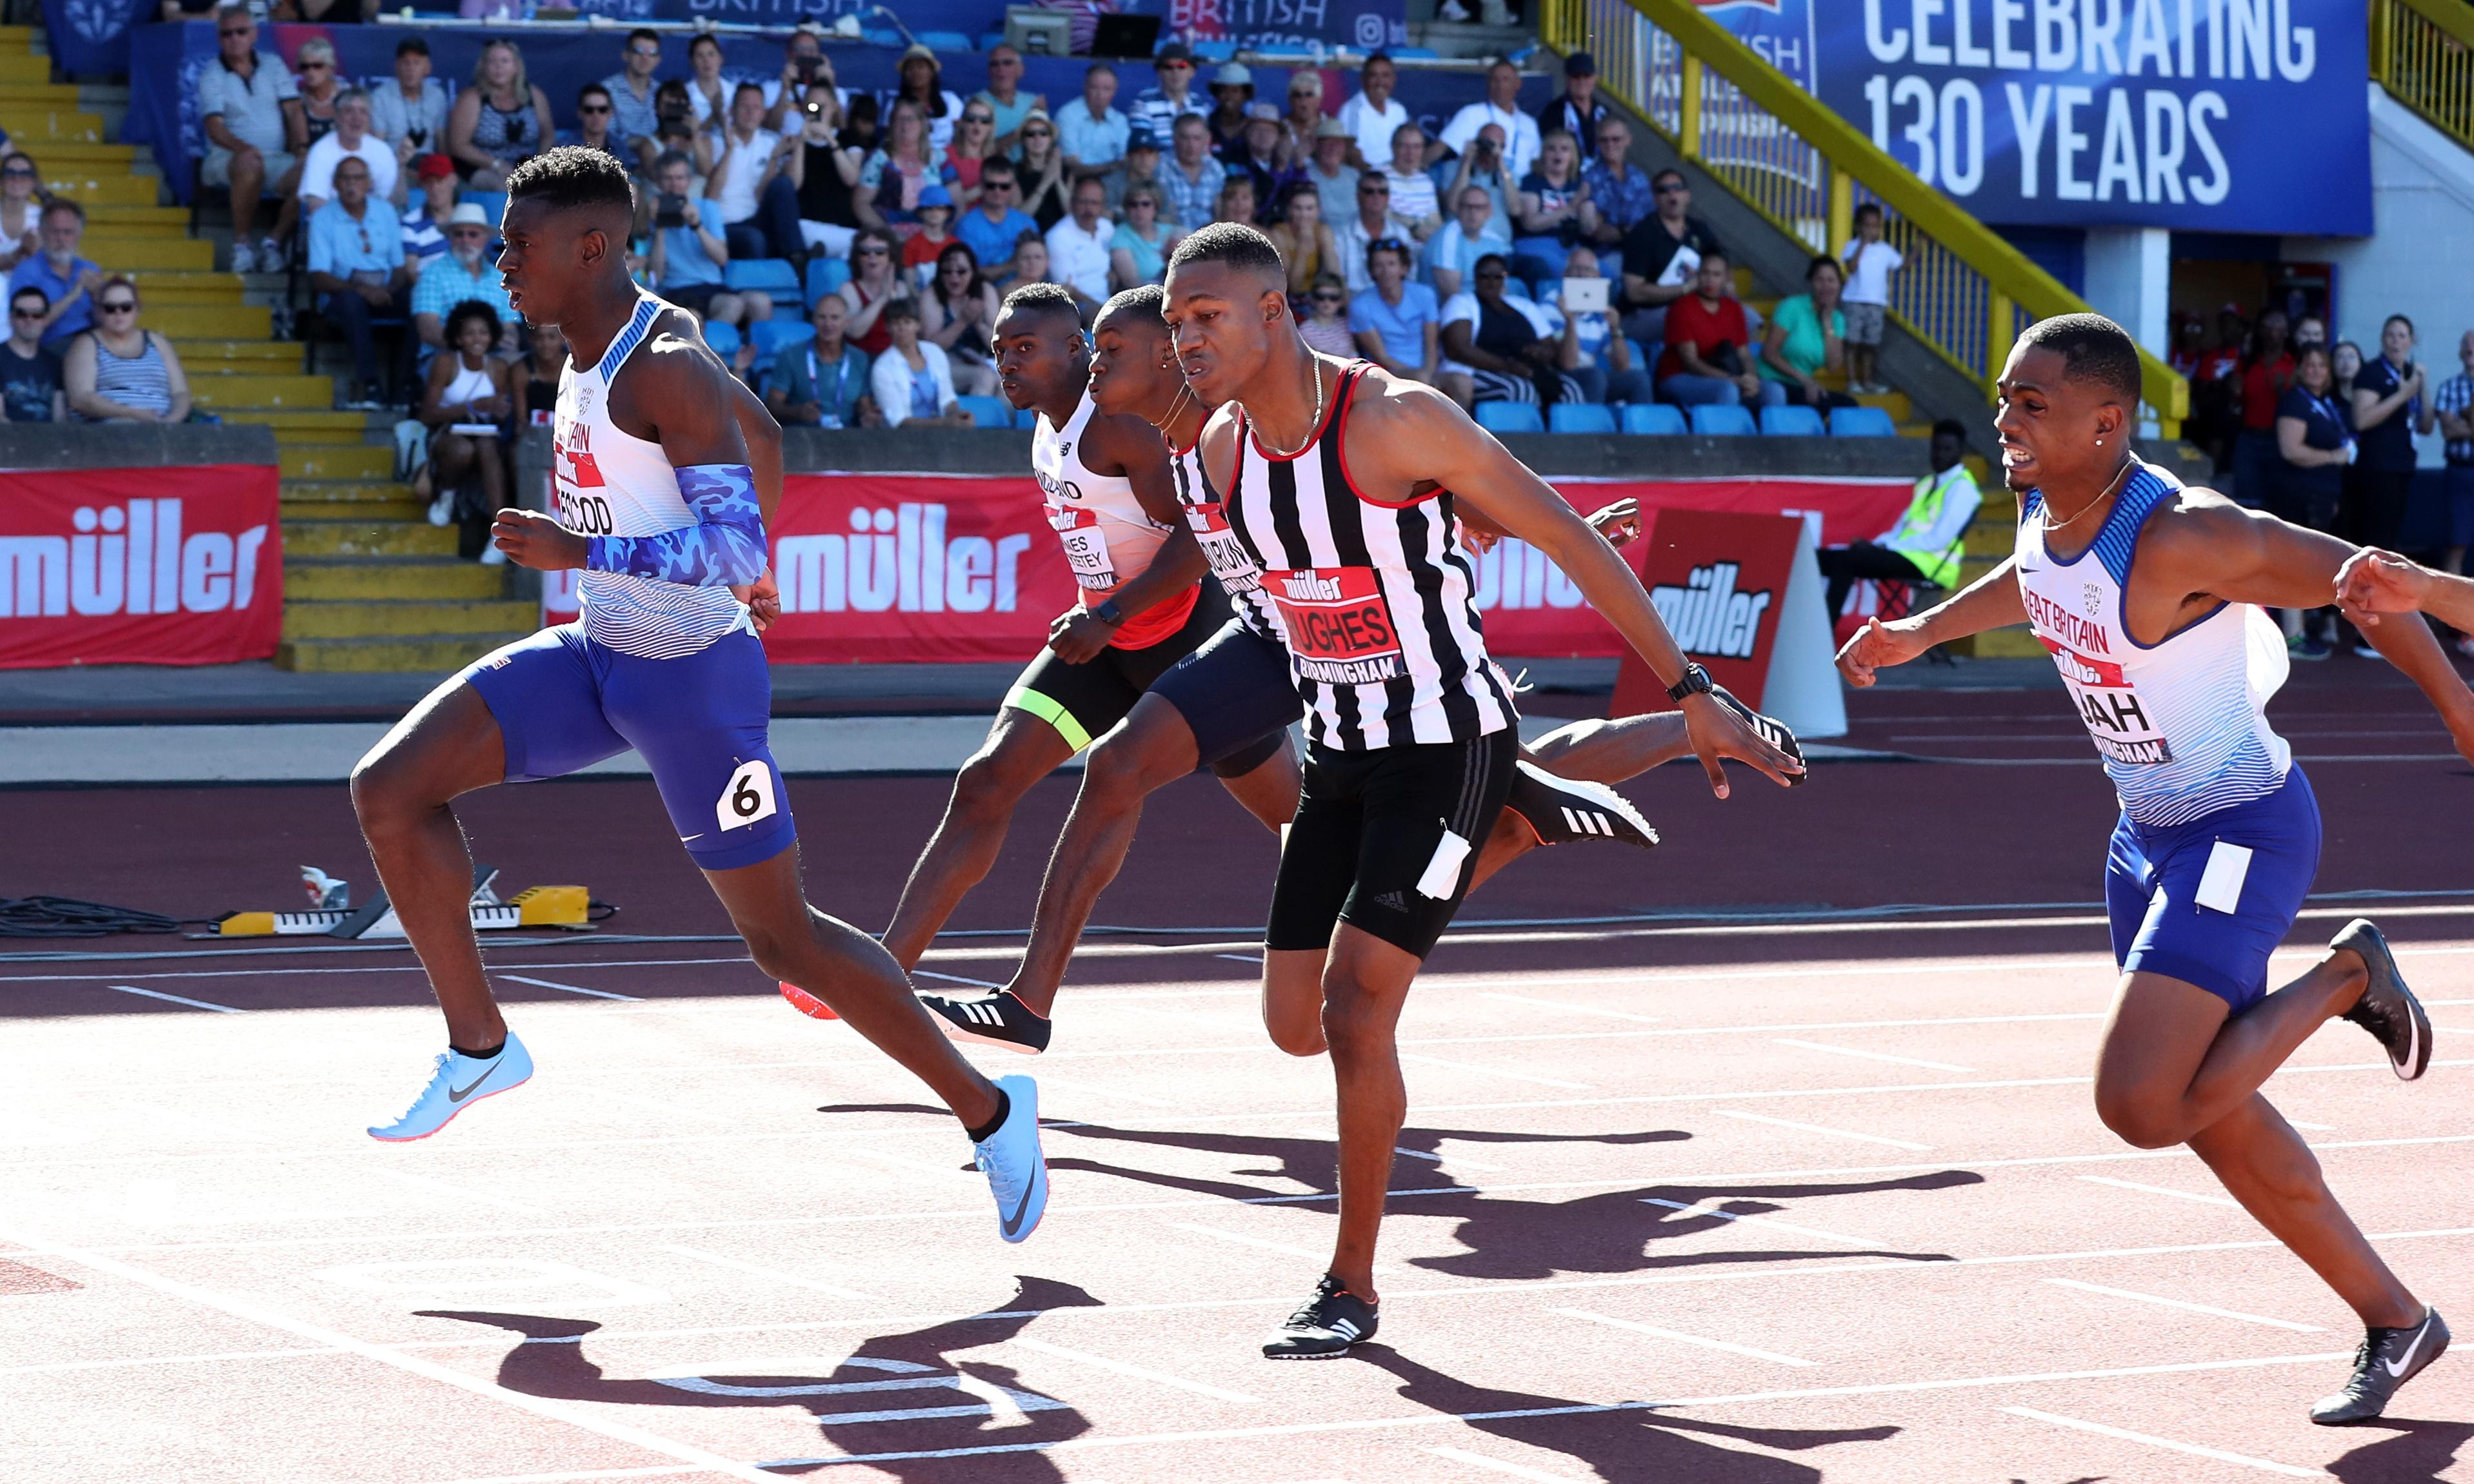 Reece Prescod tones down social life in quest for world championship gold